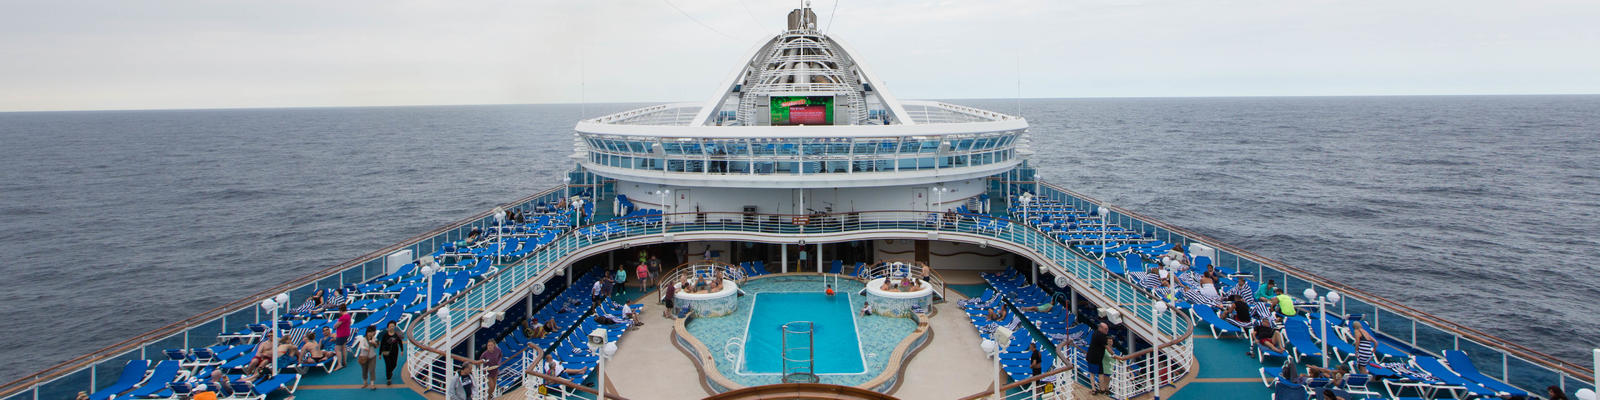 The Sun Decks on Caribbean Princess (Photo: Cruise Critic)